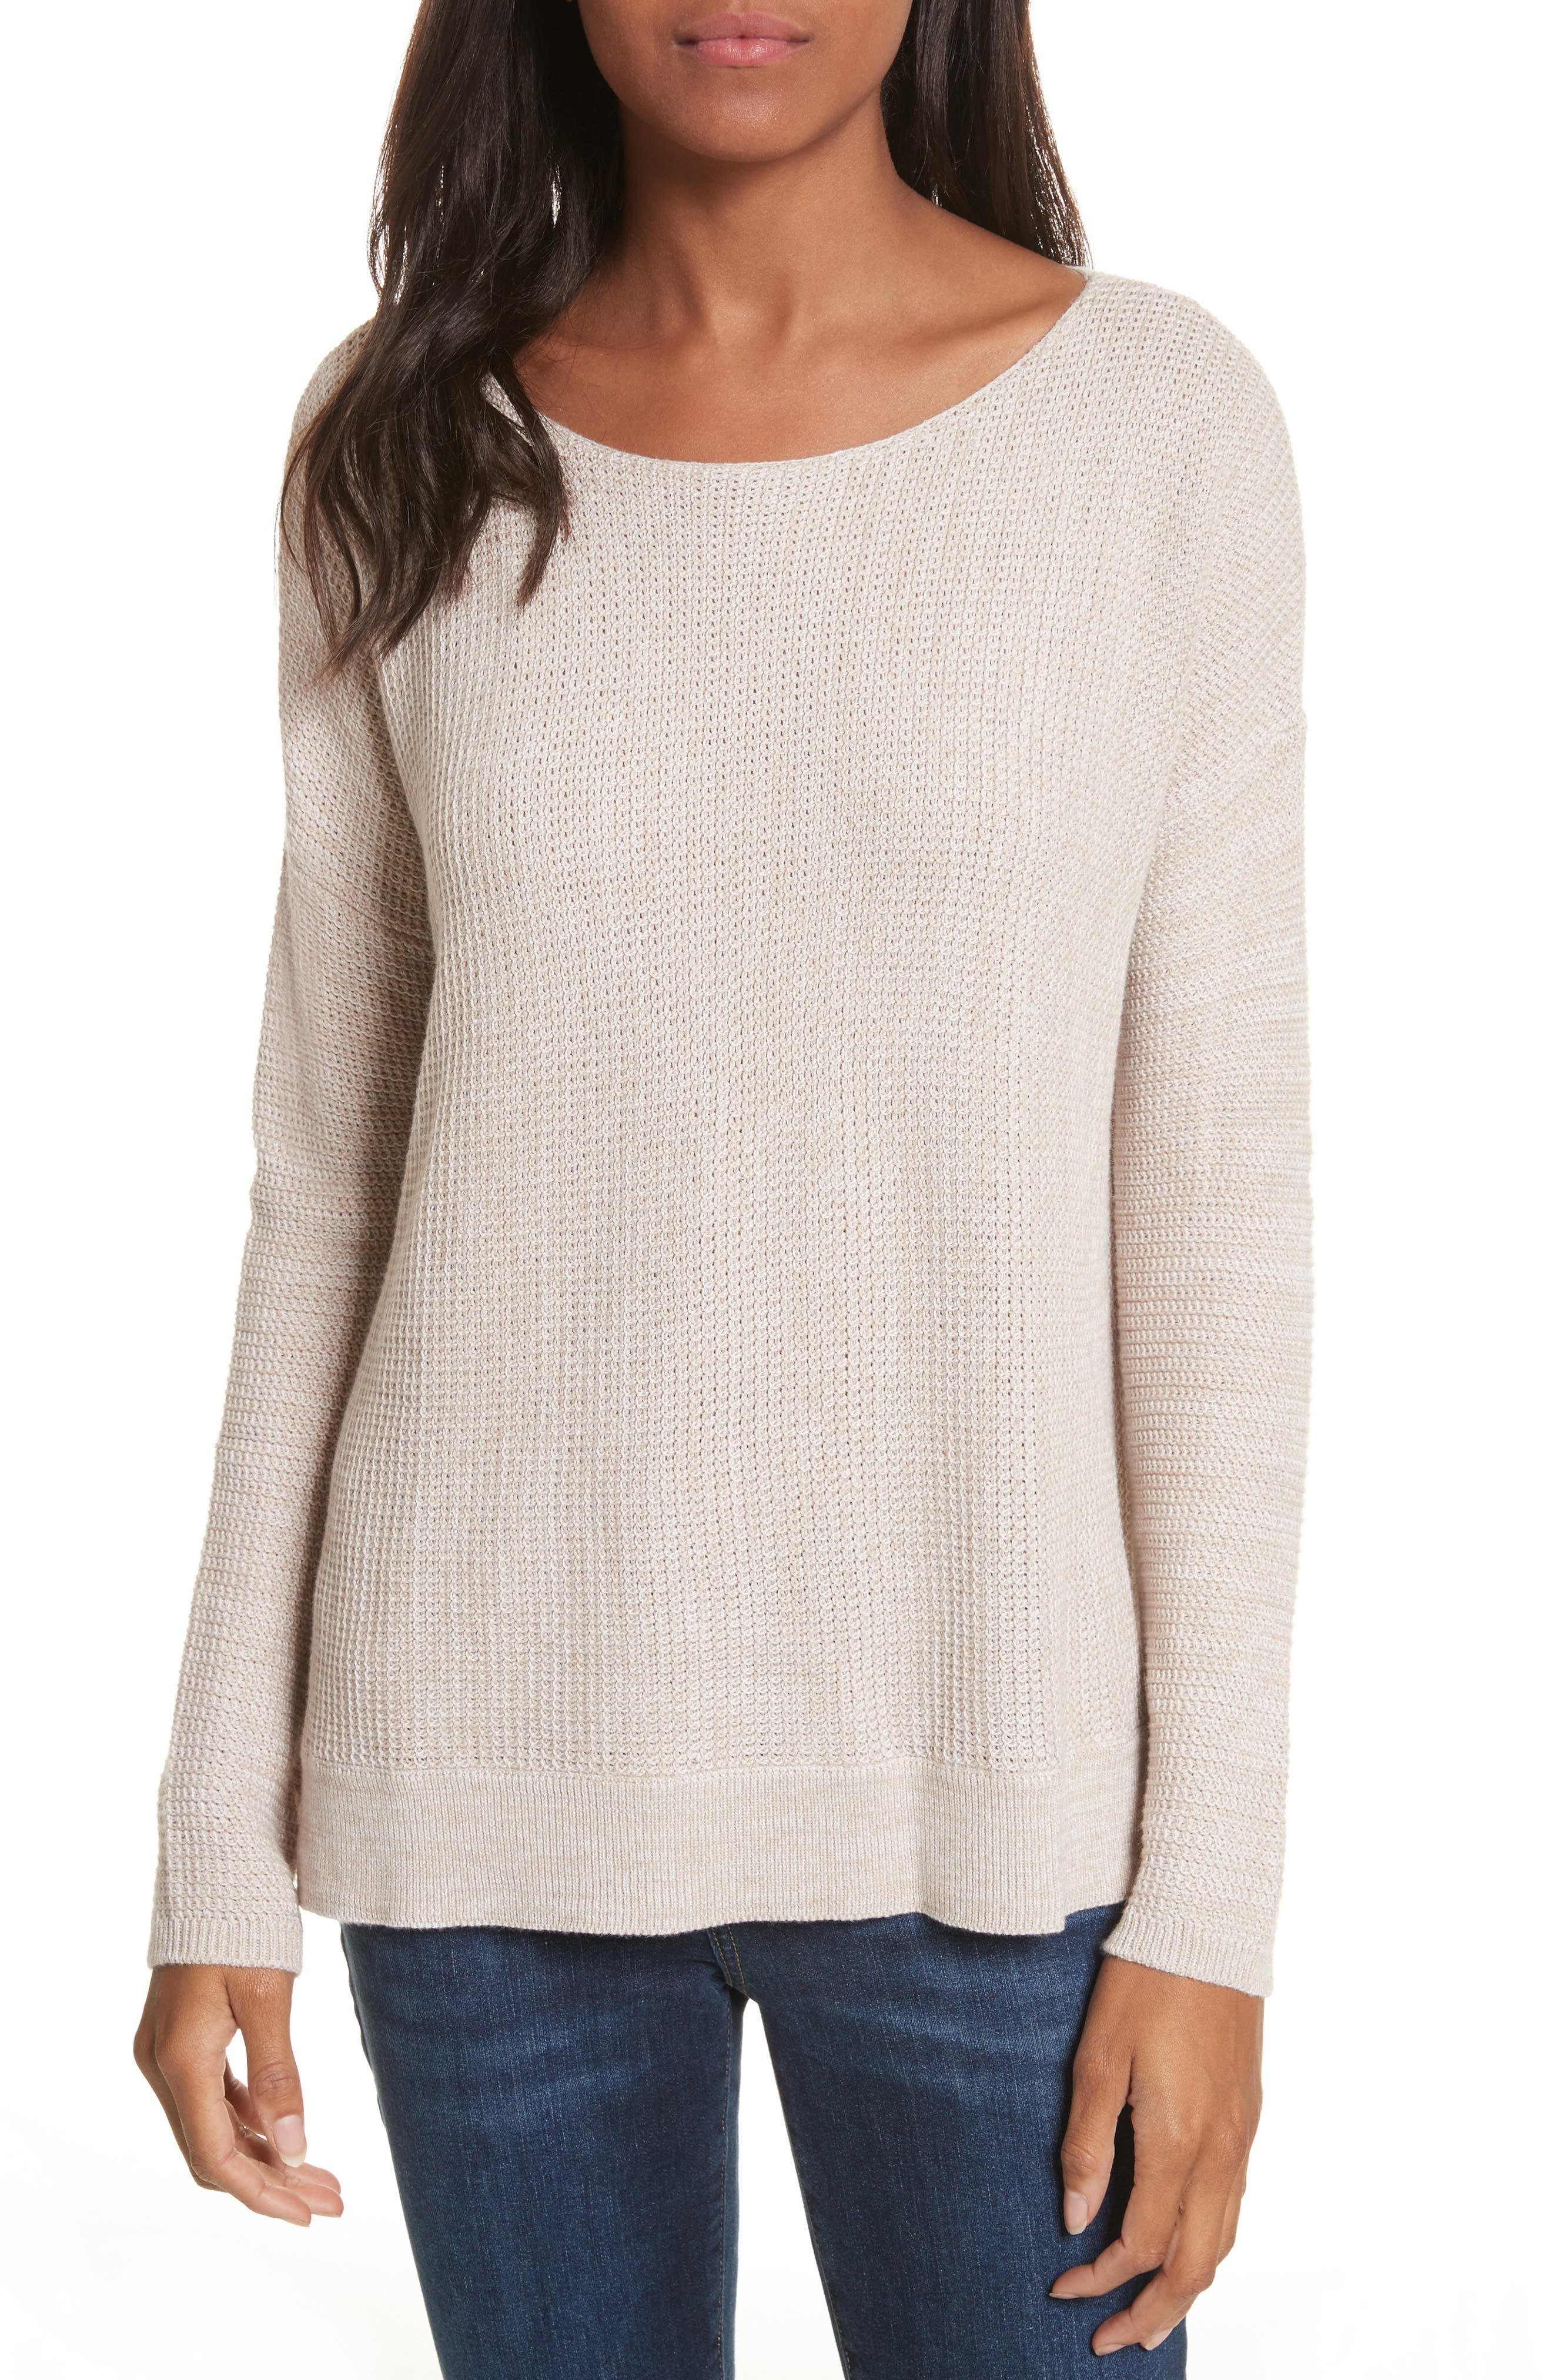 Soft Joie Kashani Pullover,                             Main thumbnail 1, color,                             905